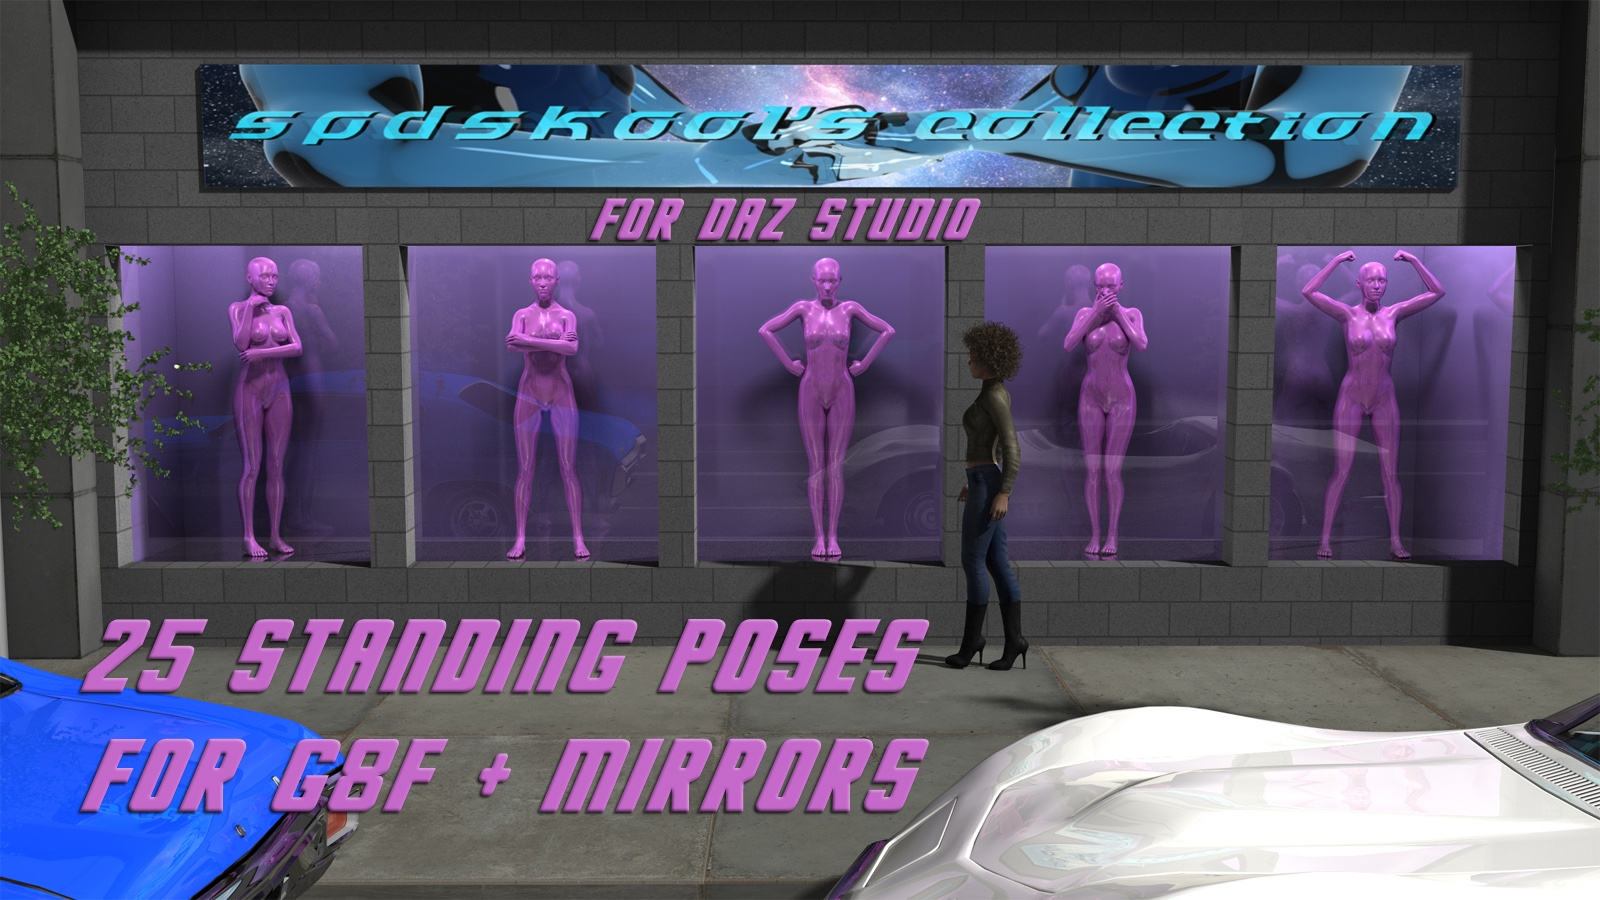 25 Standing Poses for G8F + Mirrors by spdskool